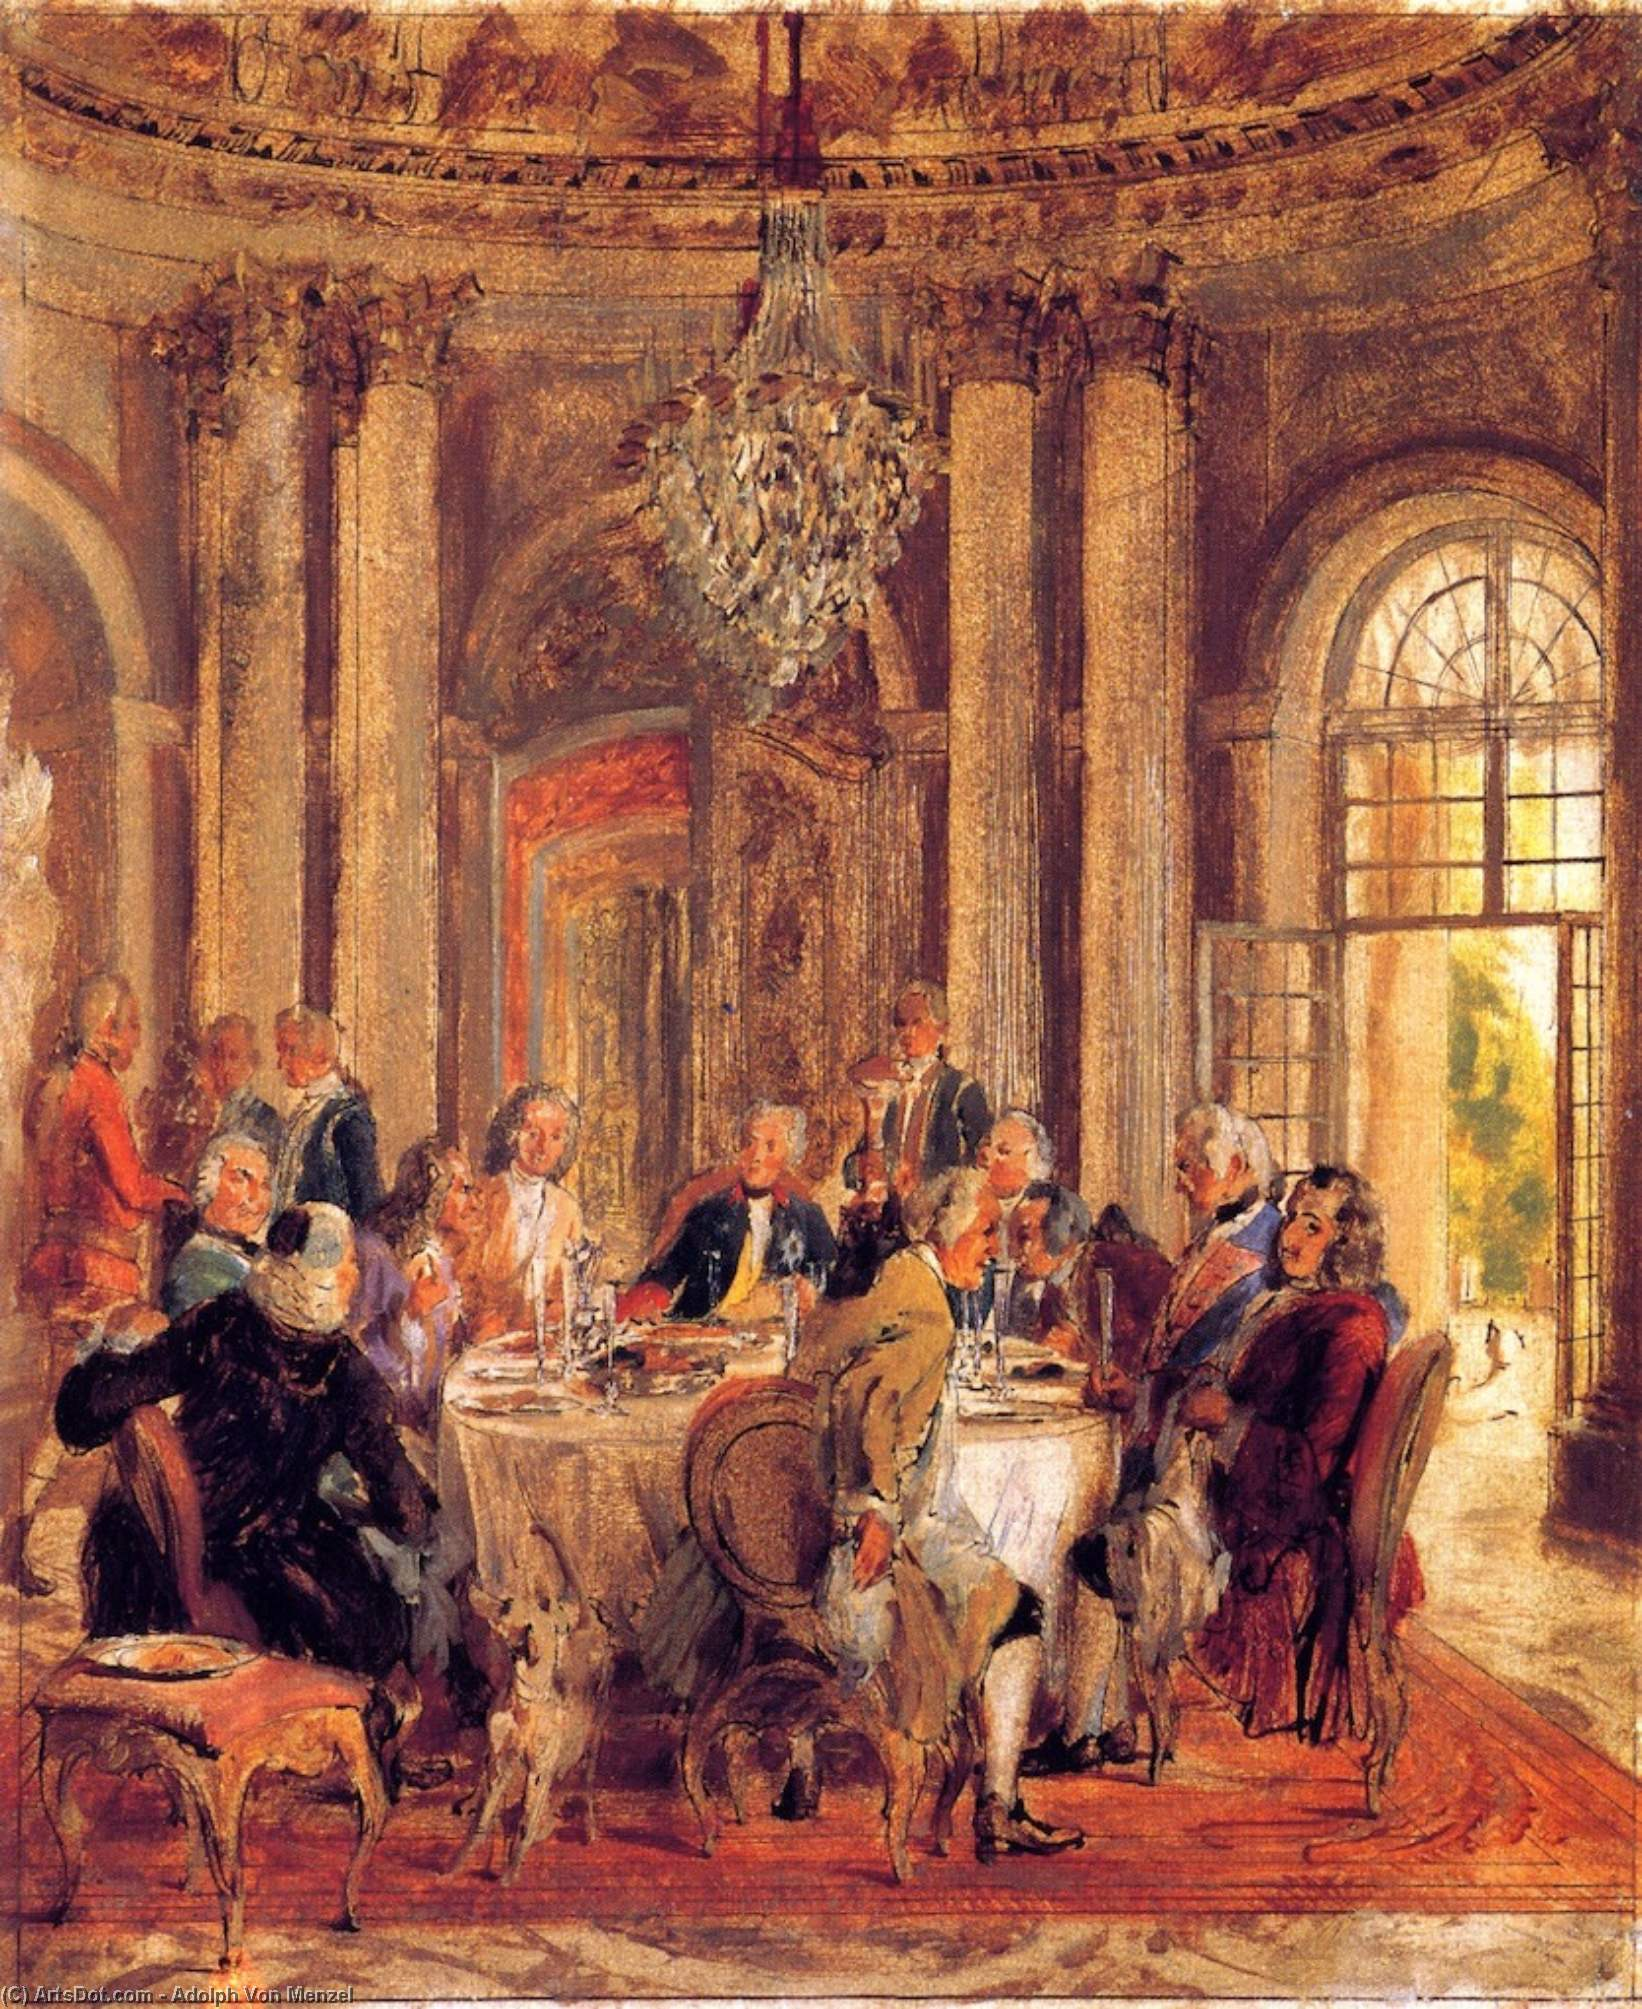 The Round Table of Frederick II at Sanssouci (sketch), Painting by Adolph Menzel (1815-1905, Poland)